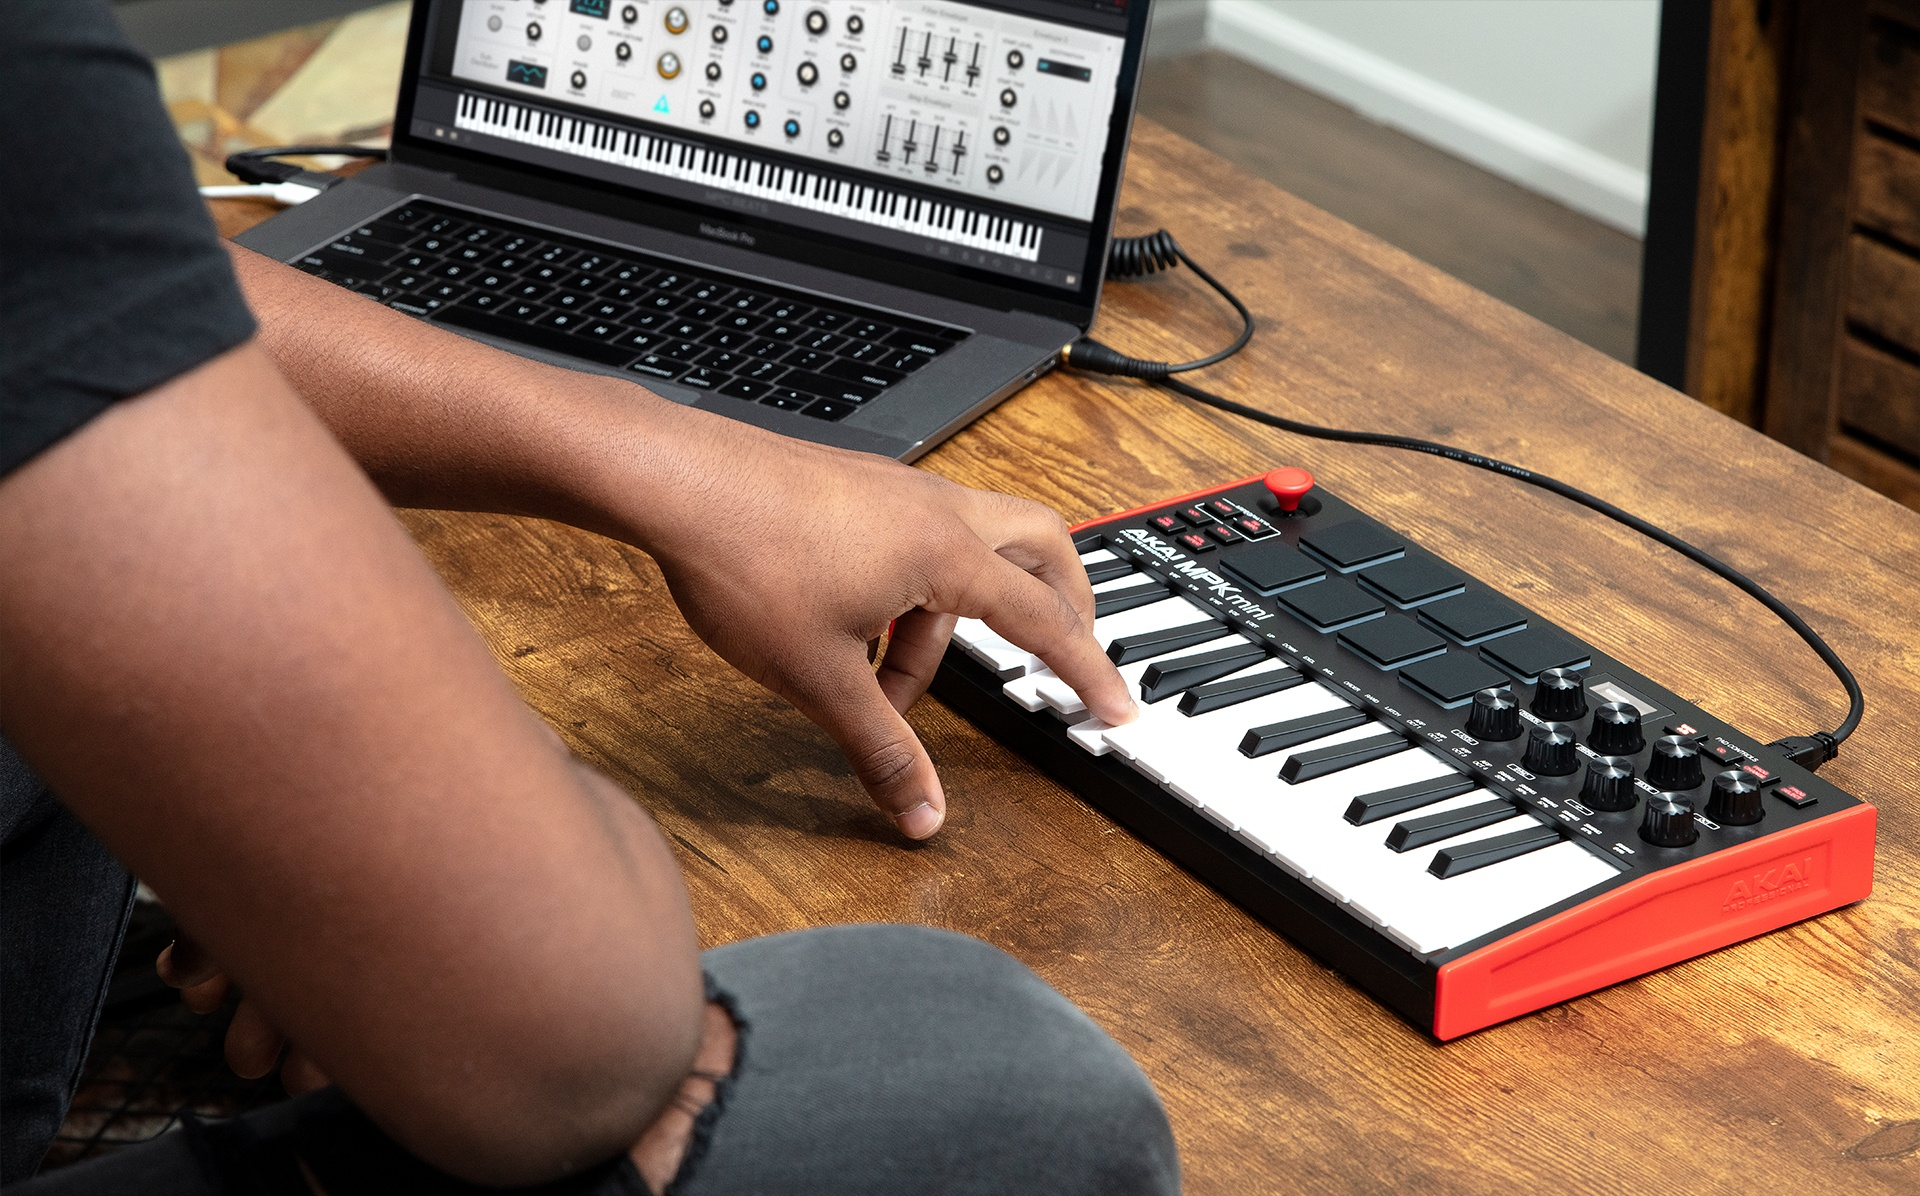 Music producer playing MPK Mini keys on laptop with MPC Beats